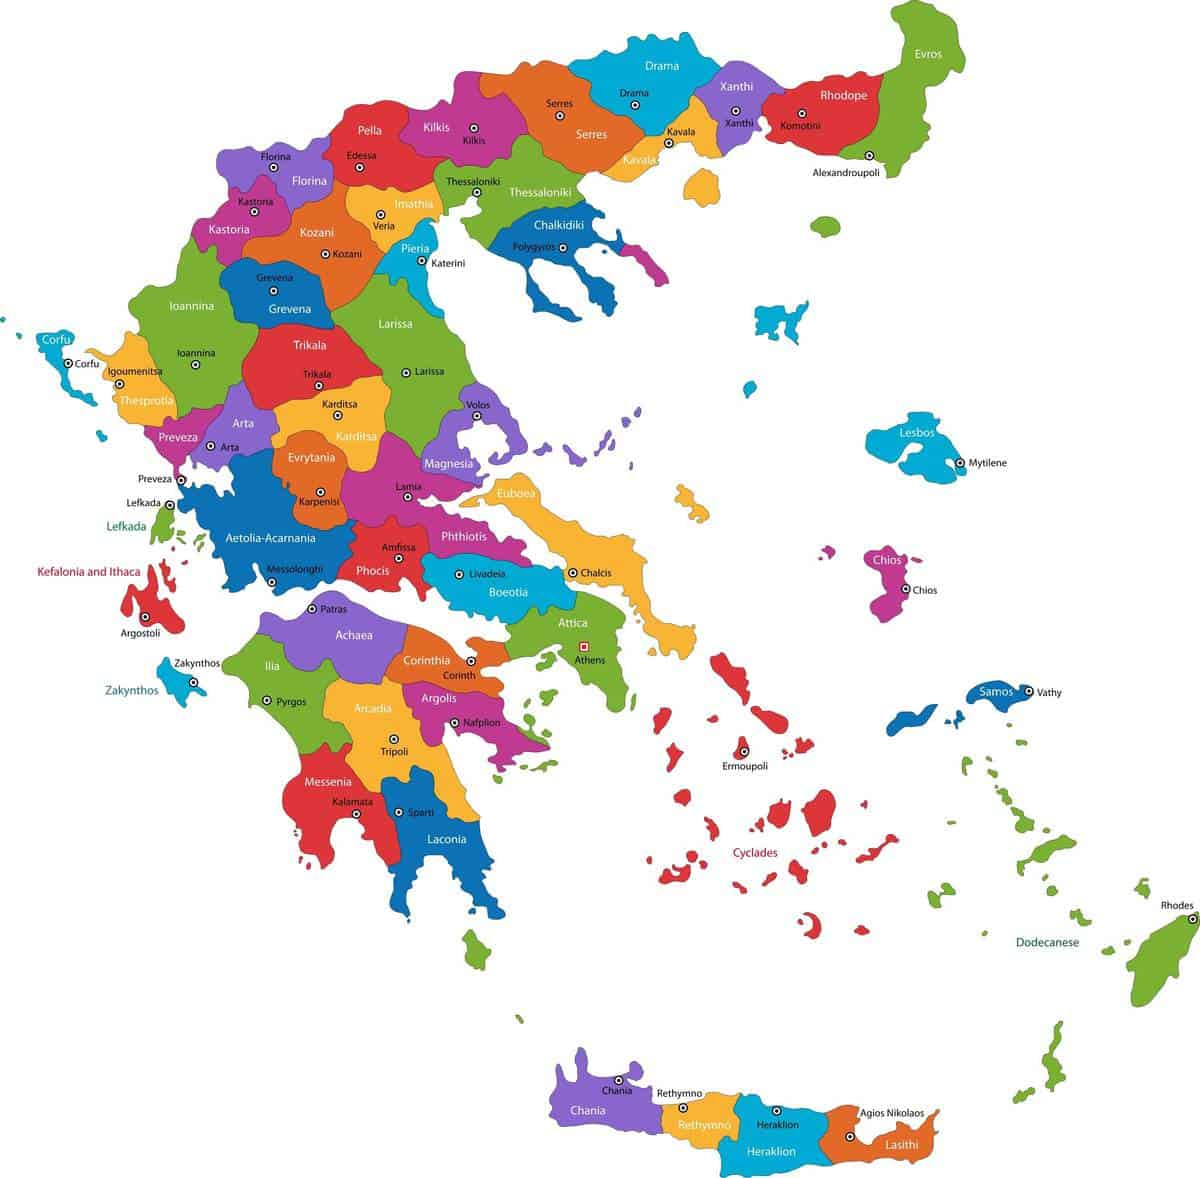 colourful map of greece and greek islands